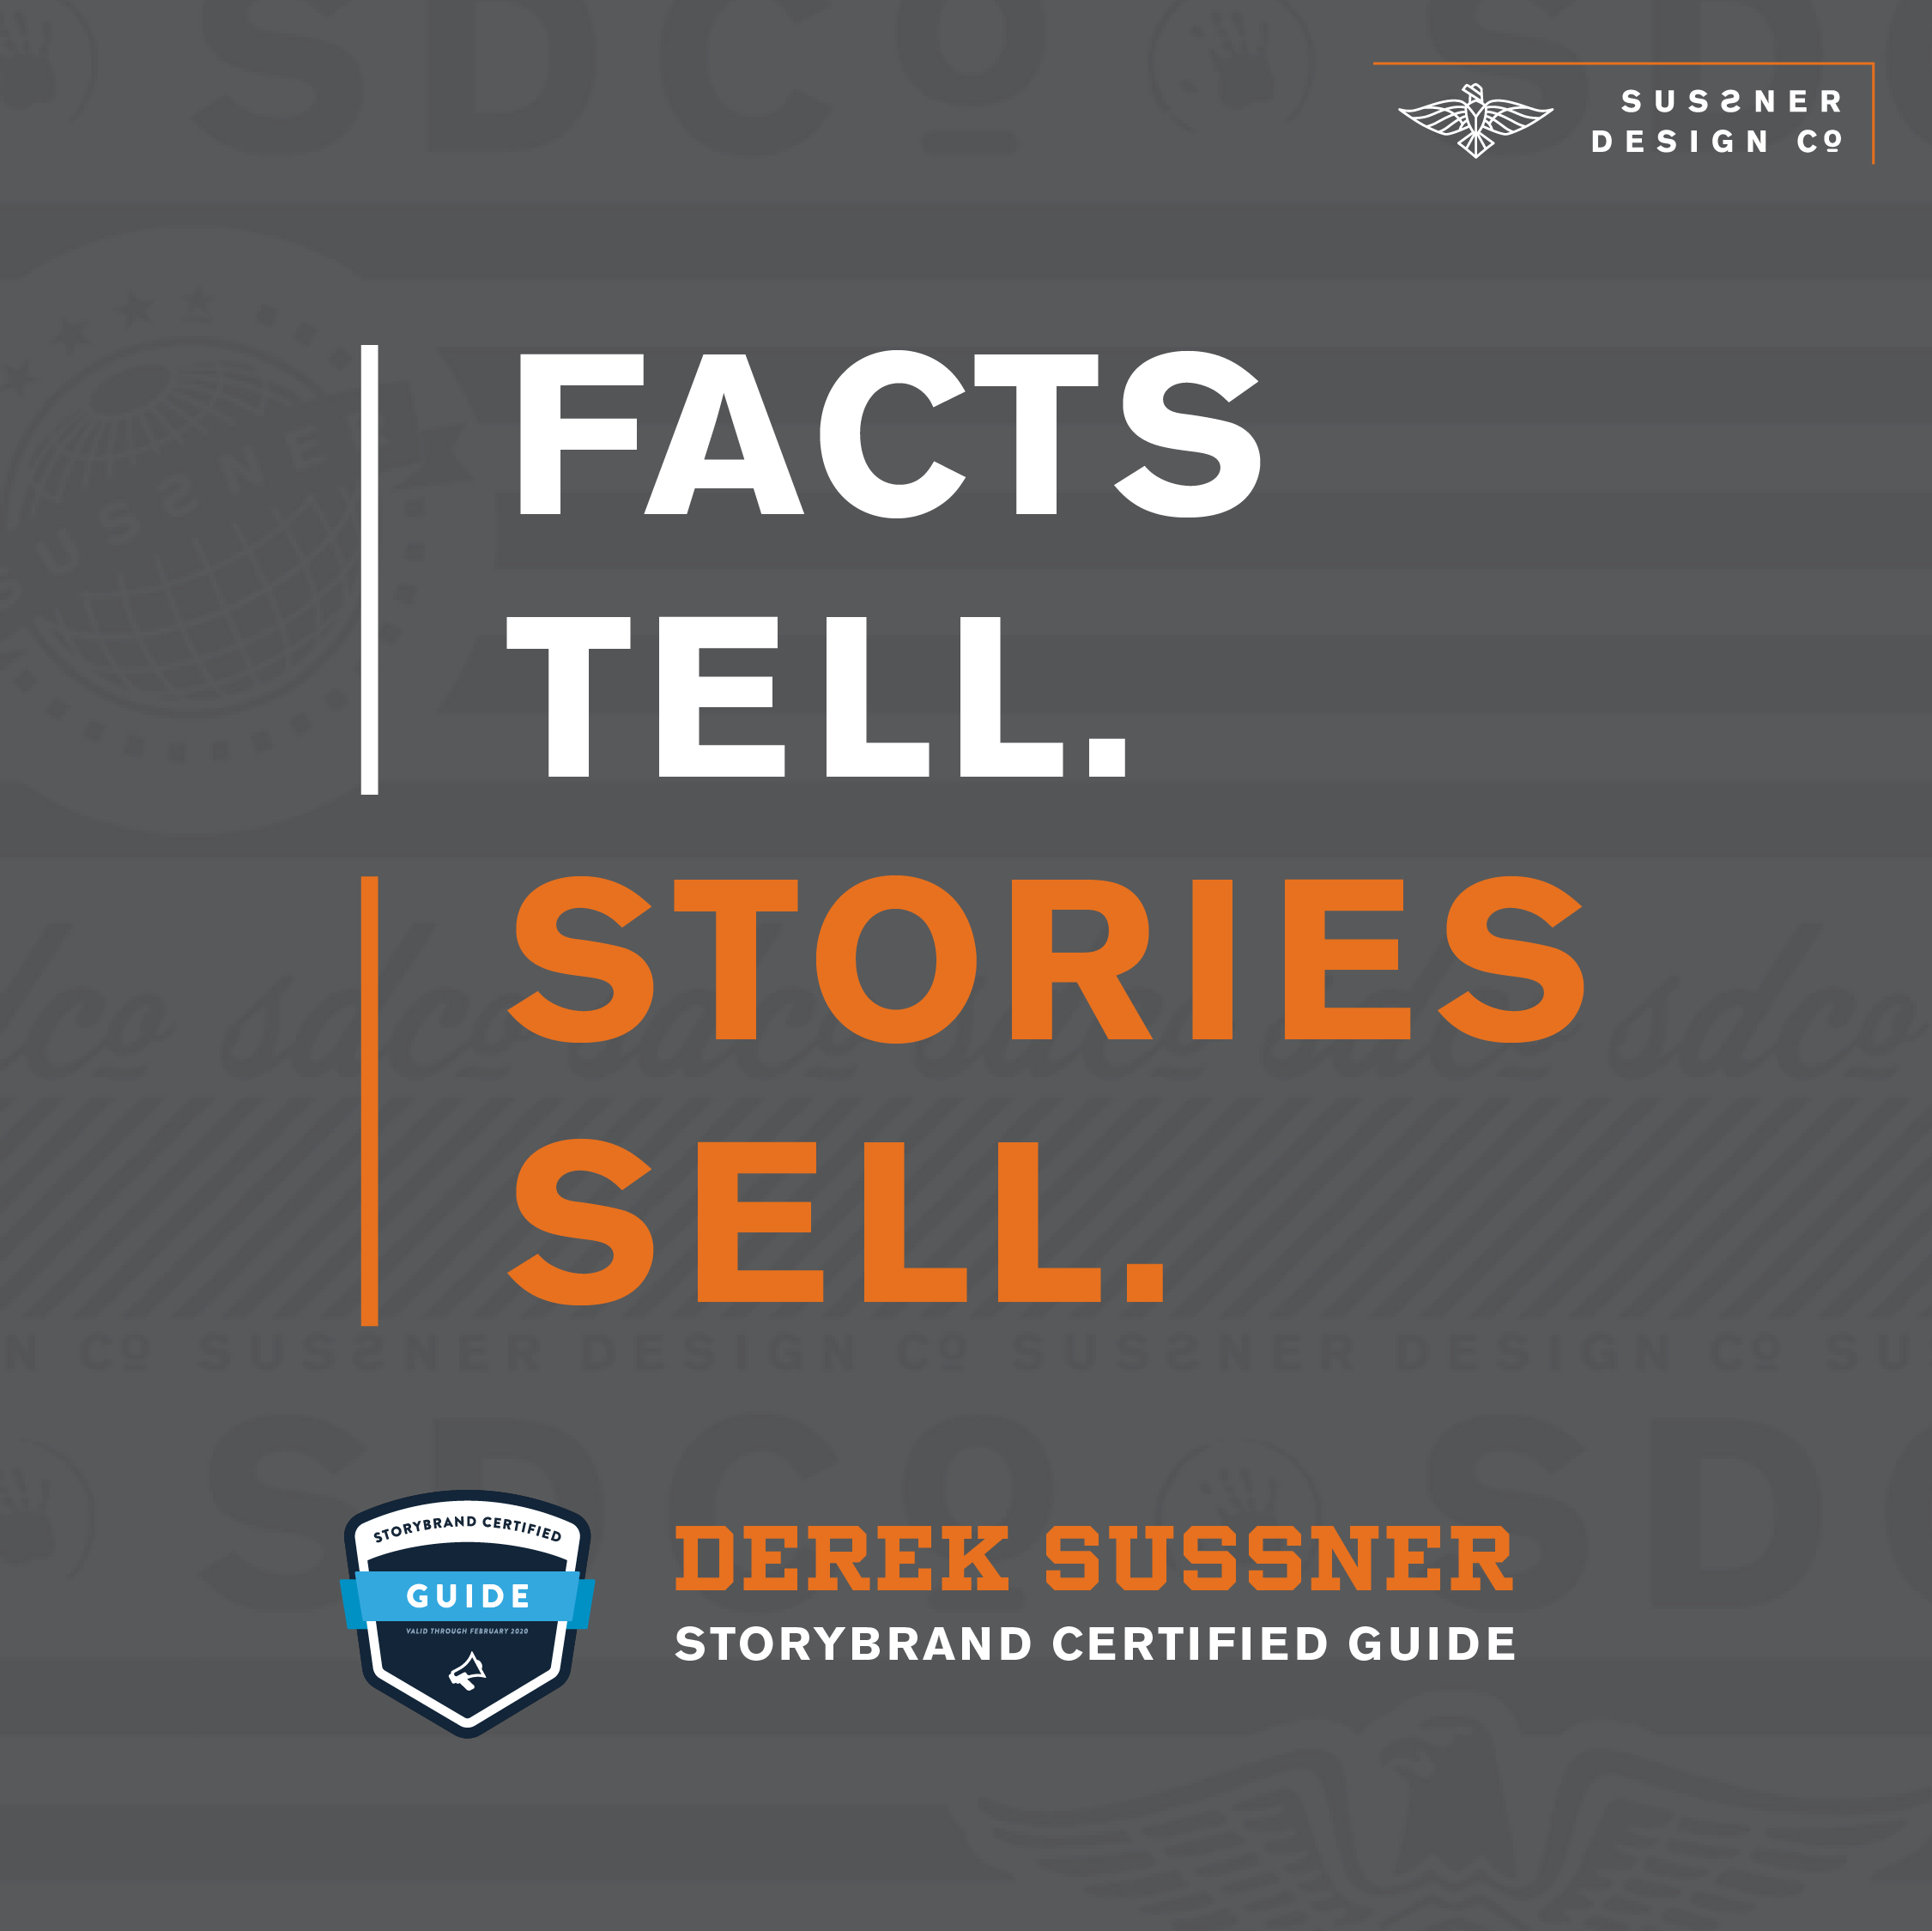 Facts Tell. Stories Sell.